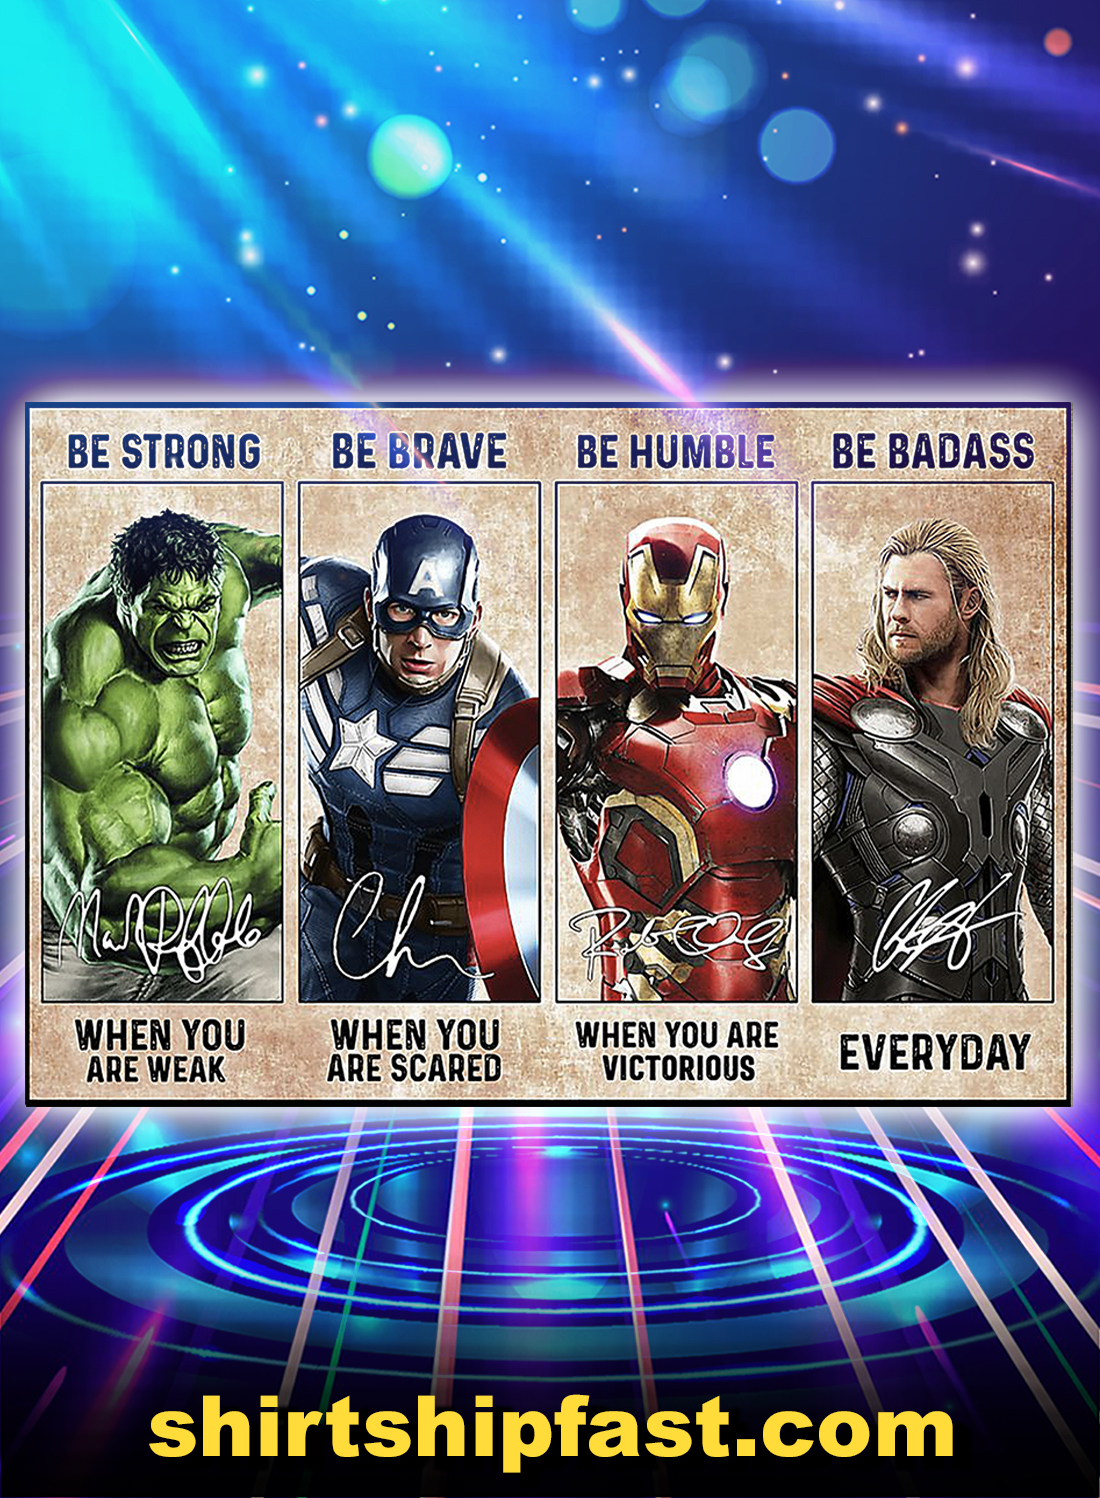 Avengers signature be strong be brave be humble be badass poster - A4